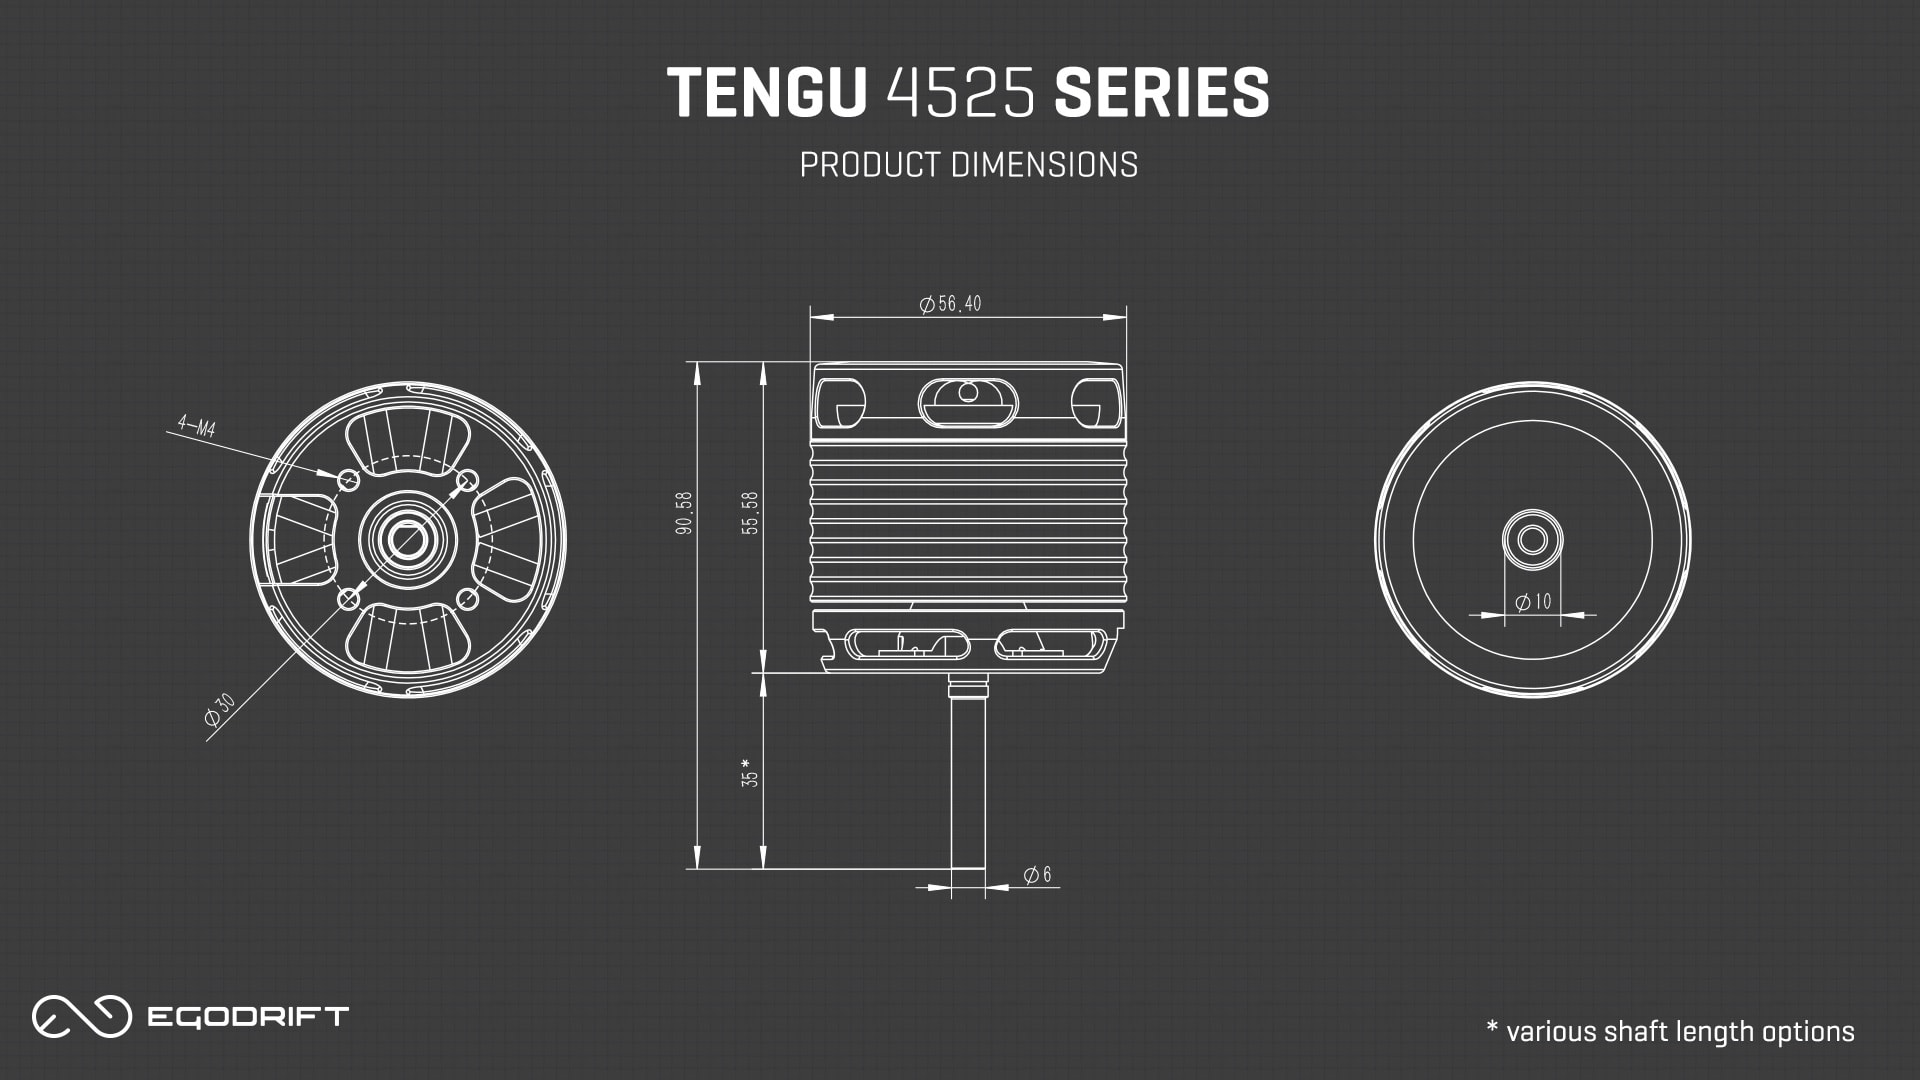 EGODRIFT Tengu 4525 HS/HT Product Dimensions